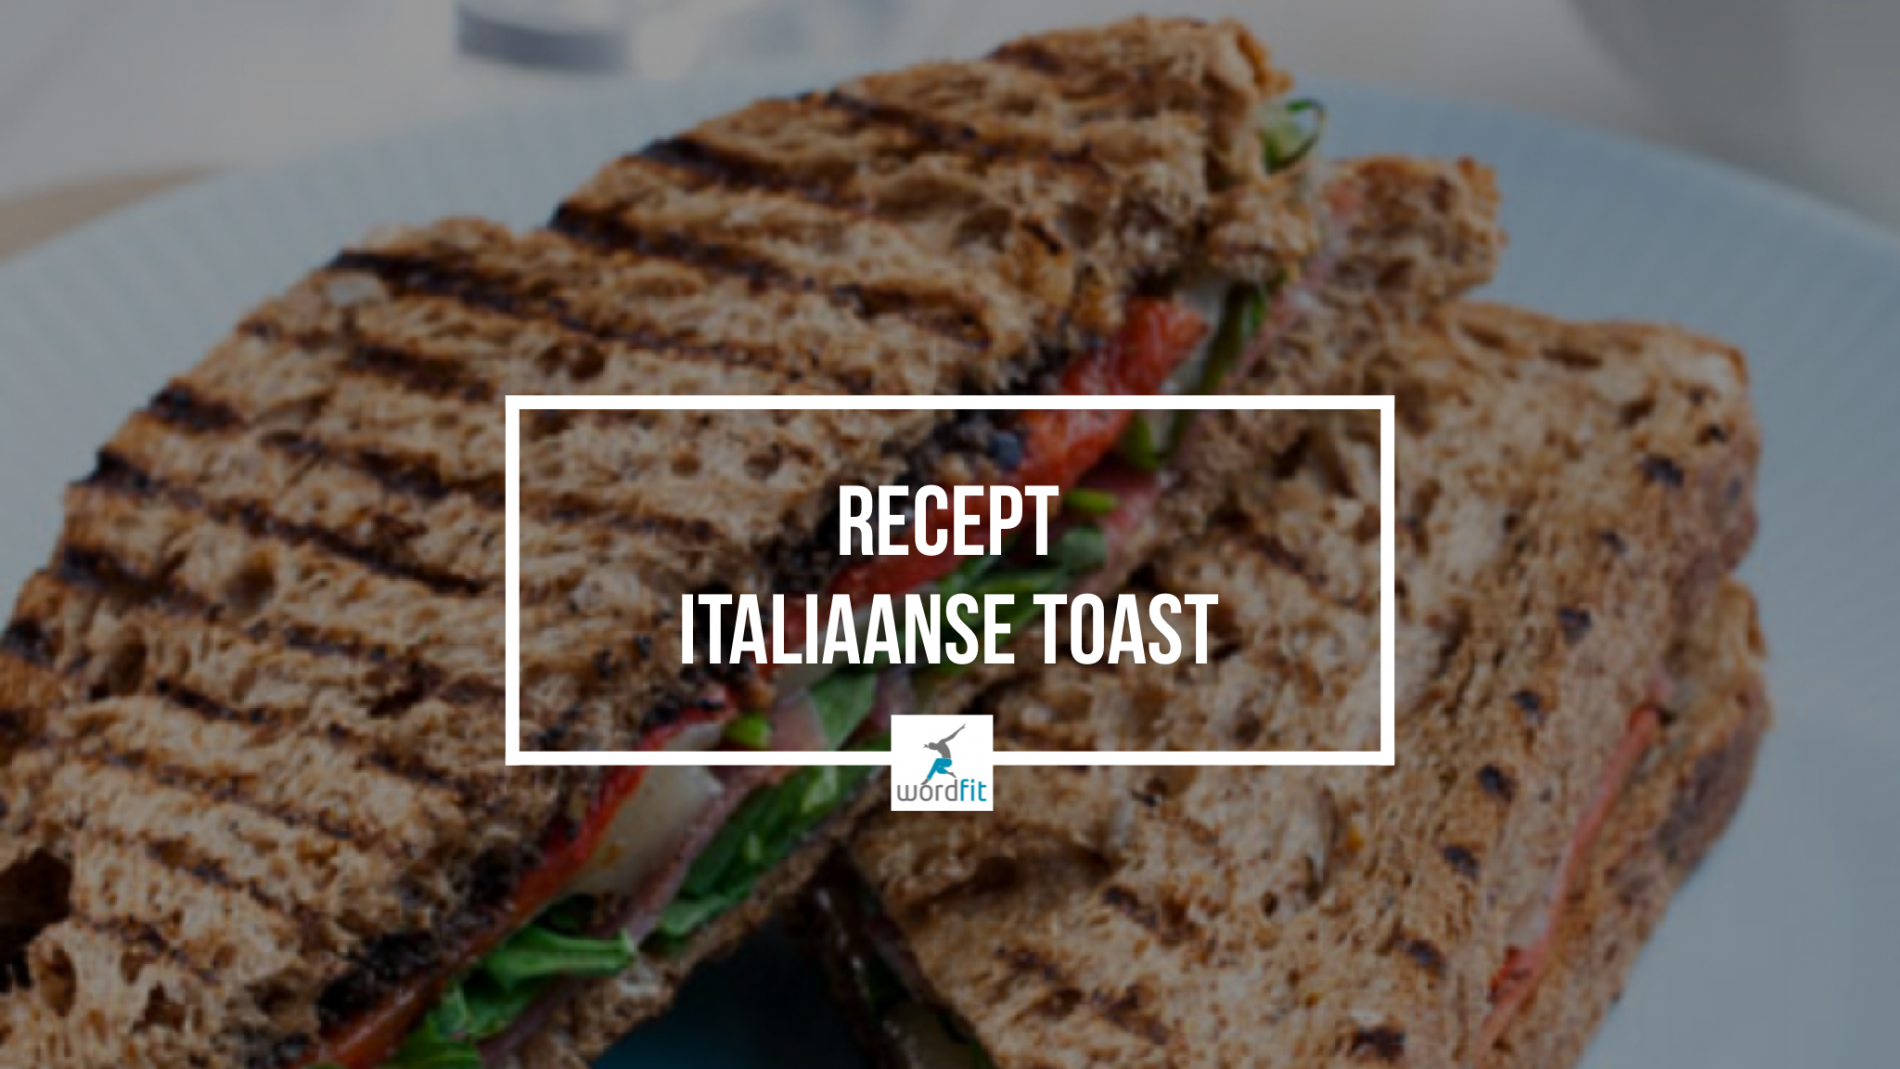 Recept Italiaanse toast WordFit Online Lifecoaching